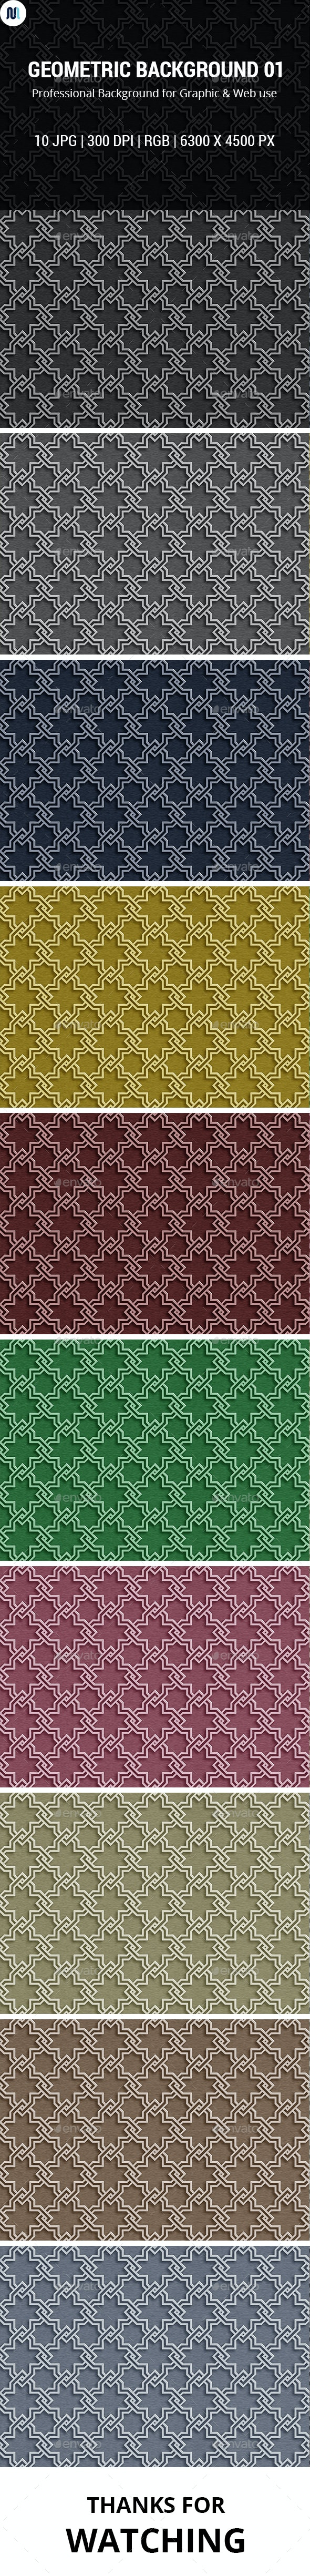 Geometric Background 01 - Patterns Backgrounds